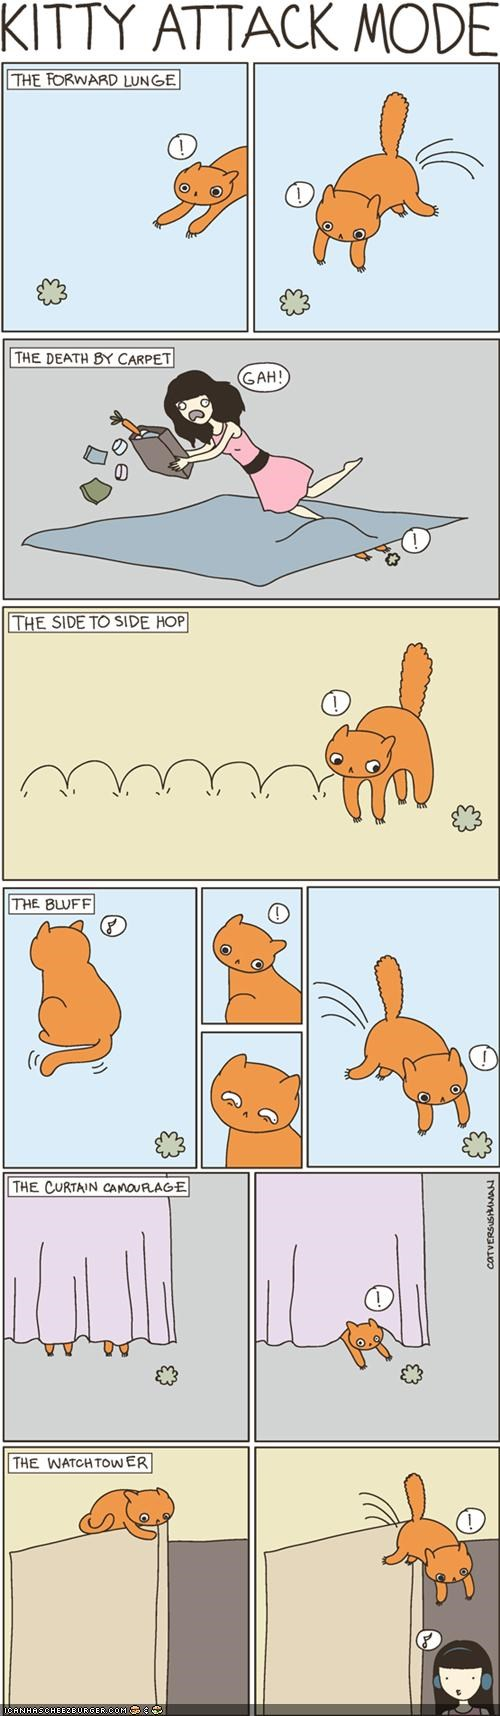 attack cat versus human comic comics modes - 5412308480